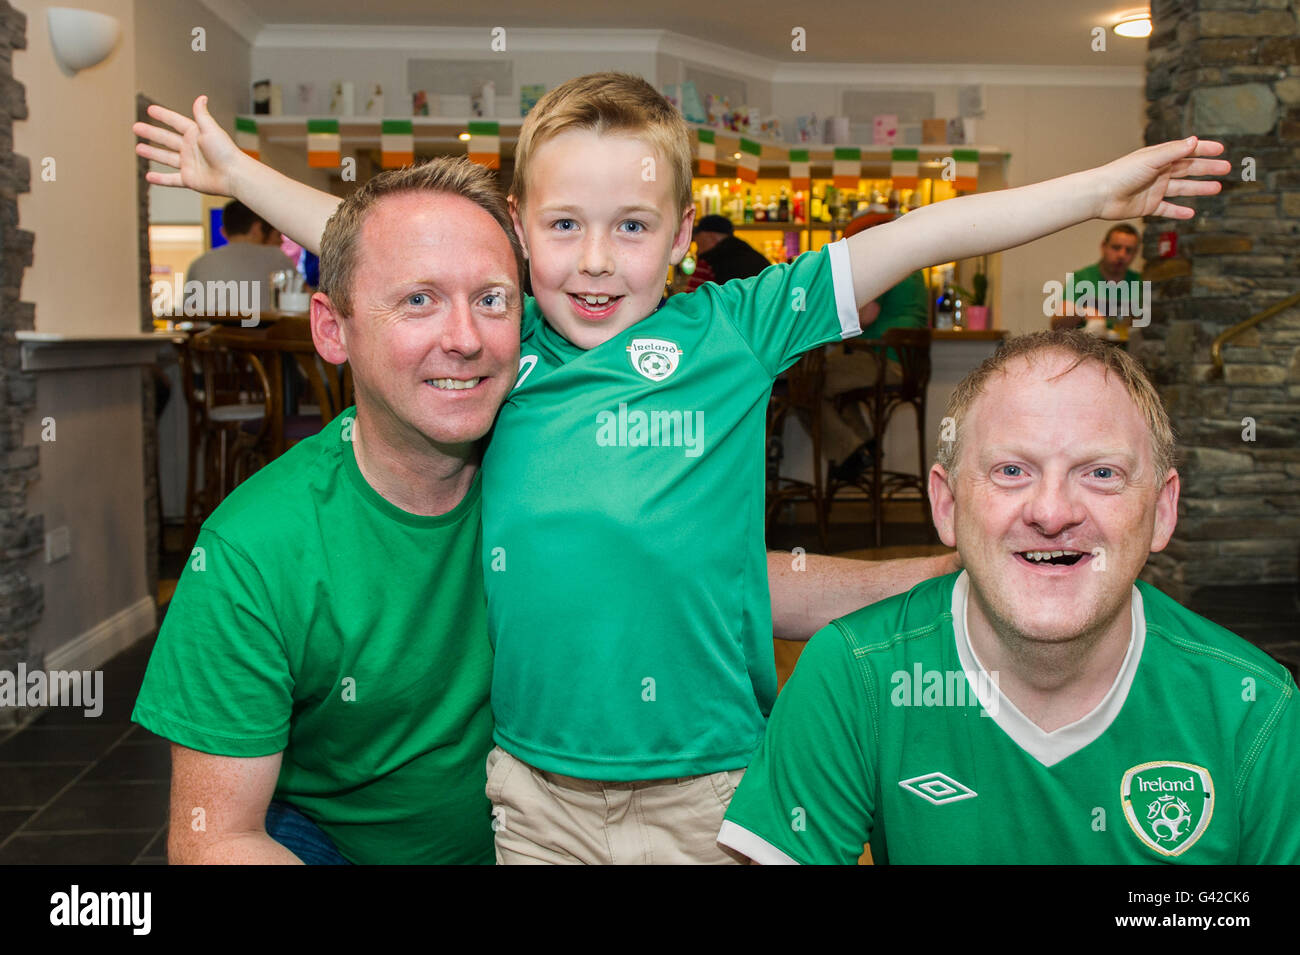 Skibbereen, West Cork, Ireland. 18th June, 2016. Ireland fans Adrian, Conor and Brendan O'Brien, all from Skibbereen, - Stock Image